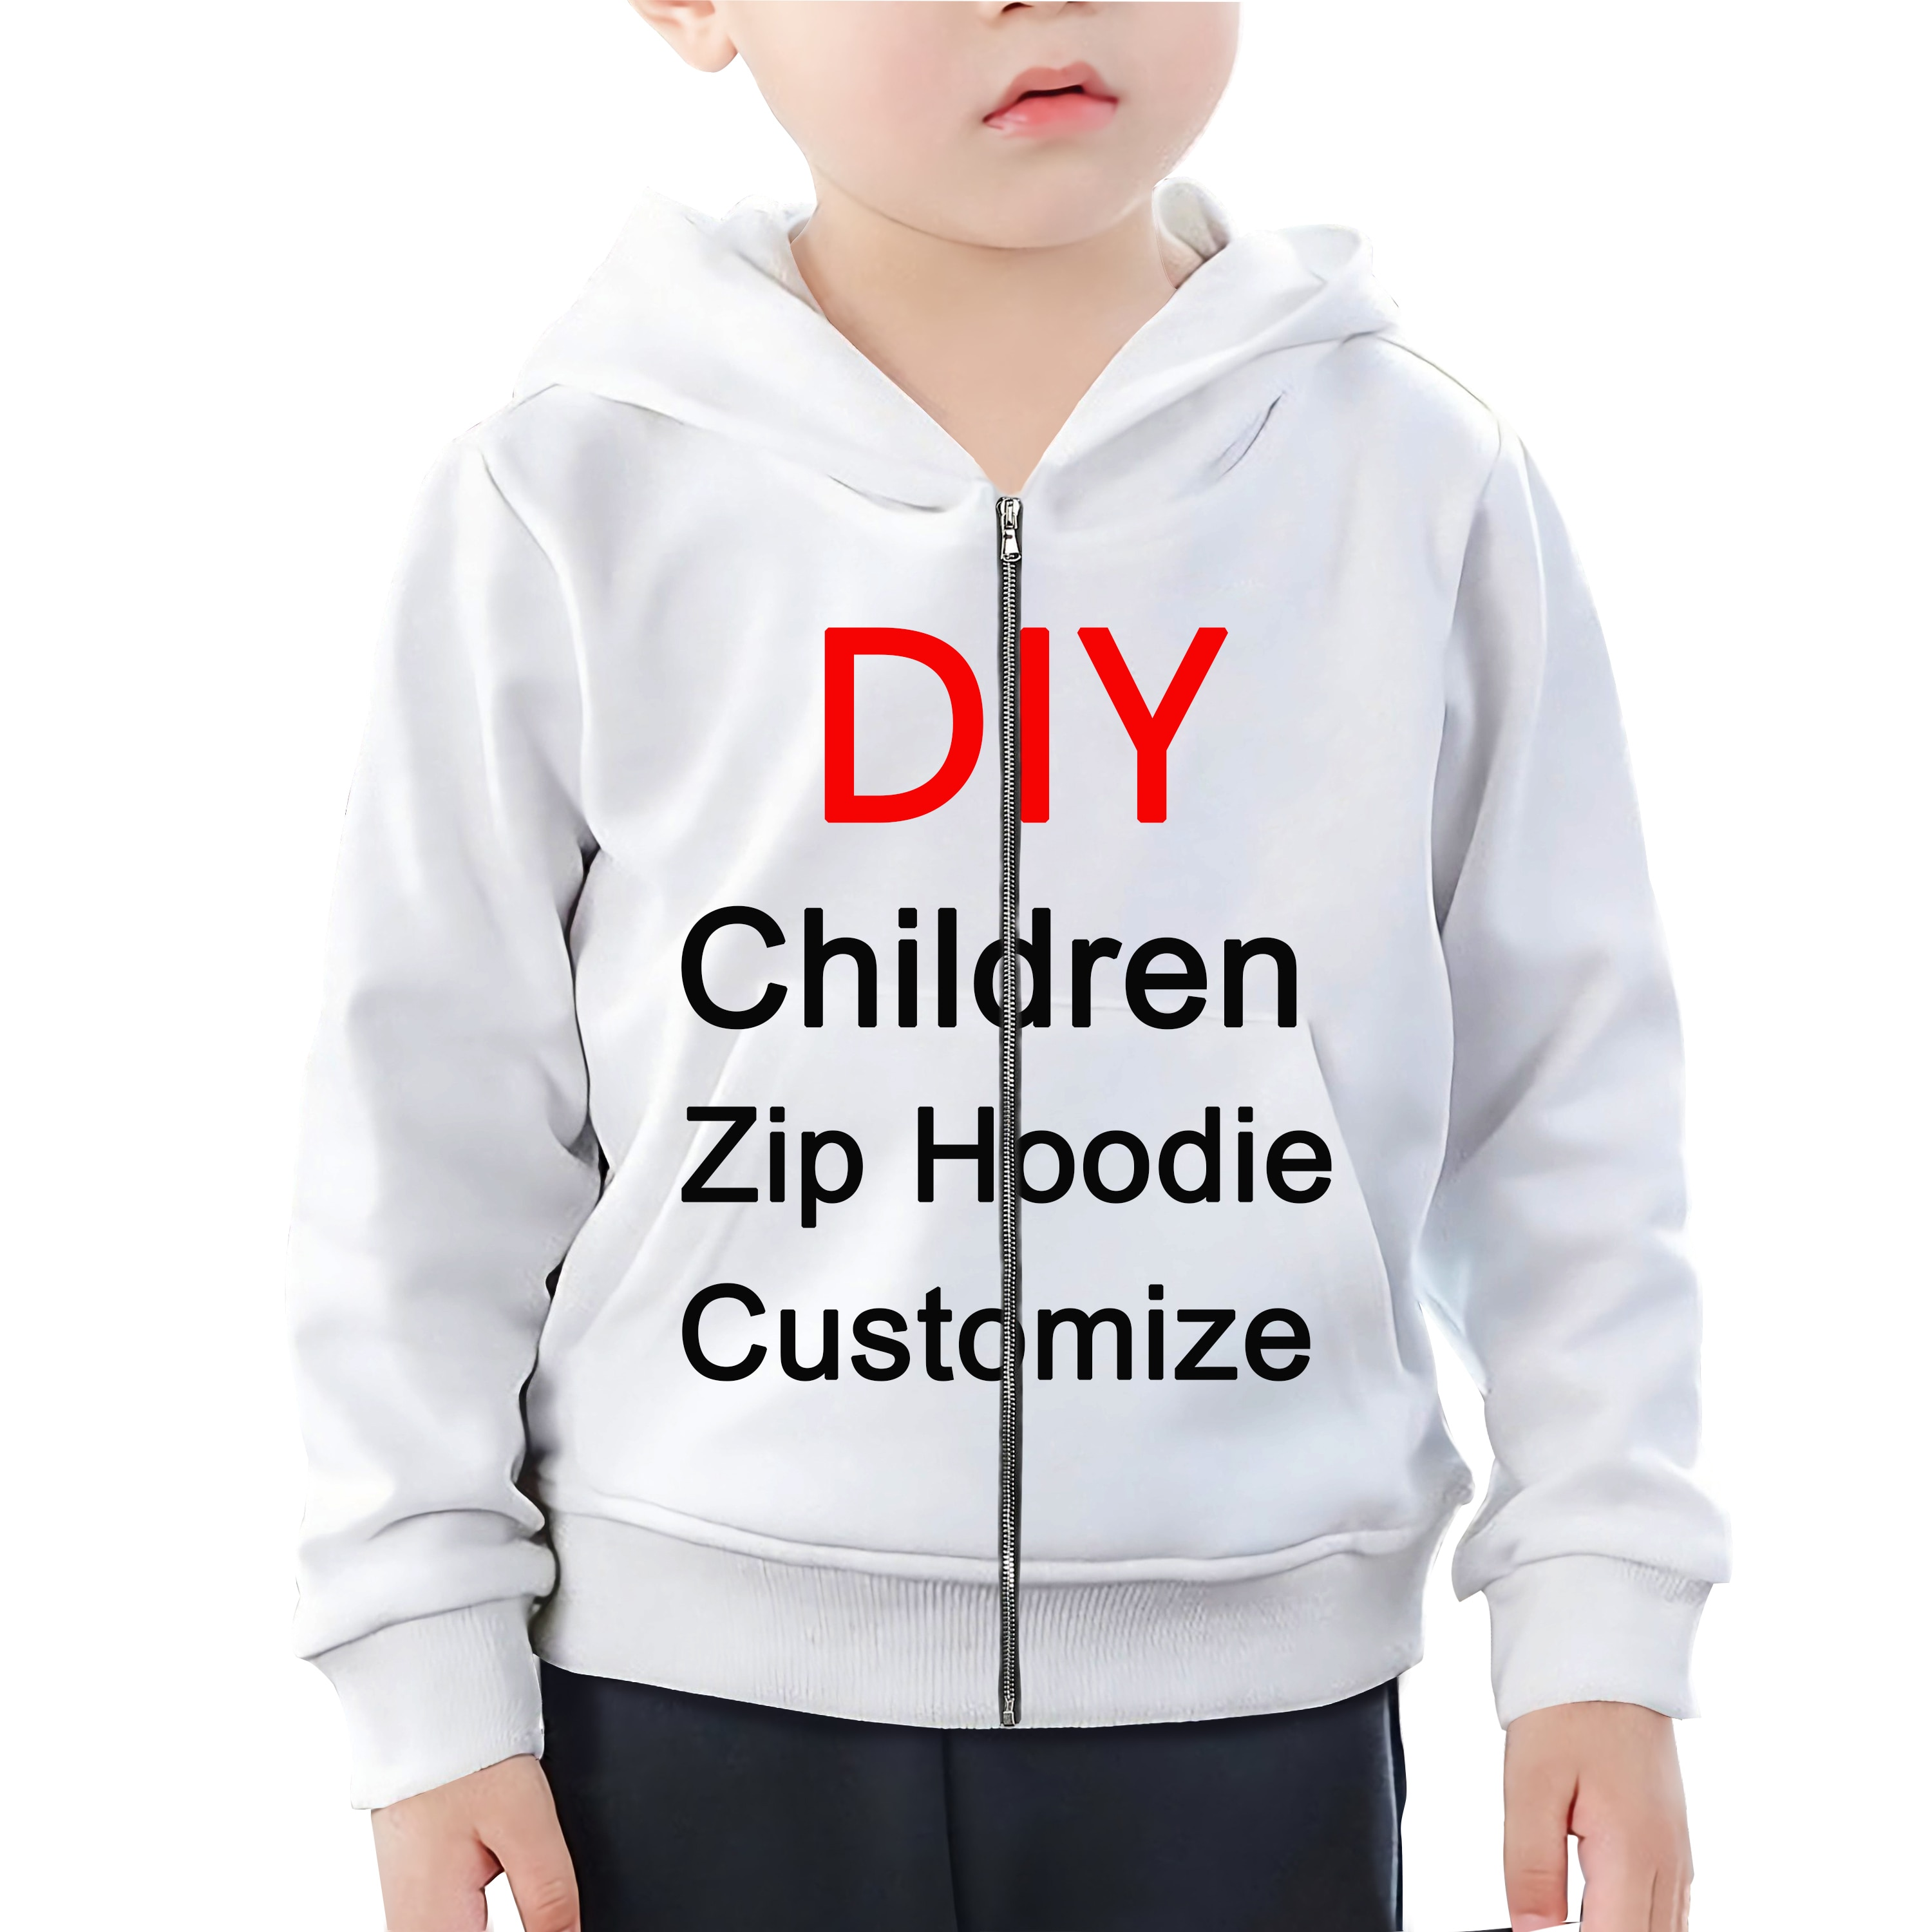 plstar cosmos create your own customer design anime photo star you want singer pattern diy short 3d print drop ship Family Fitted 3D Print DIY Personalized Design Children Zip Hoodies Own Image/Photo/Star/Singer/Anime Boy Girl Casual Tops